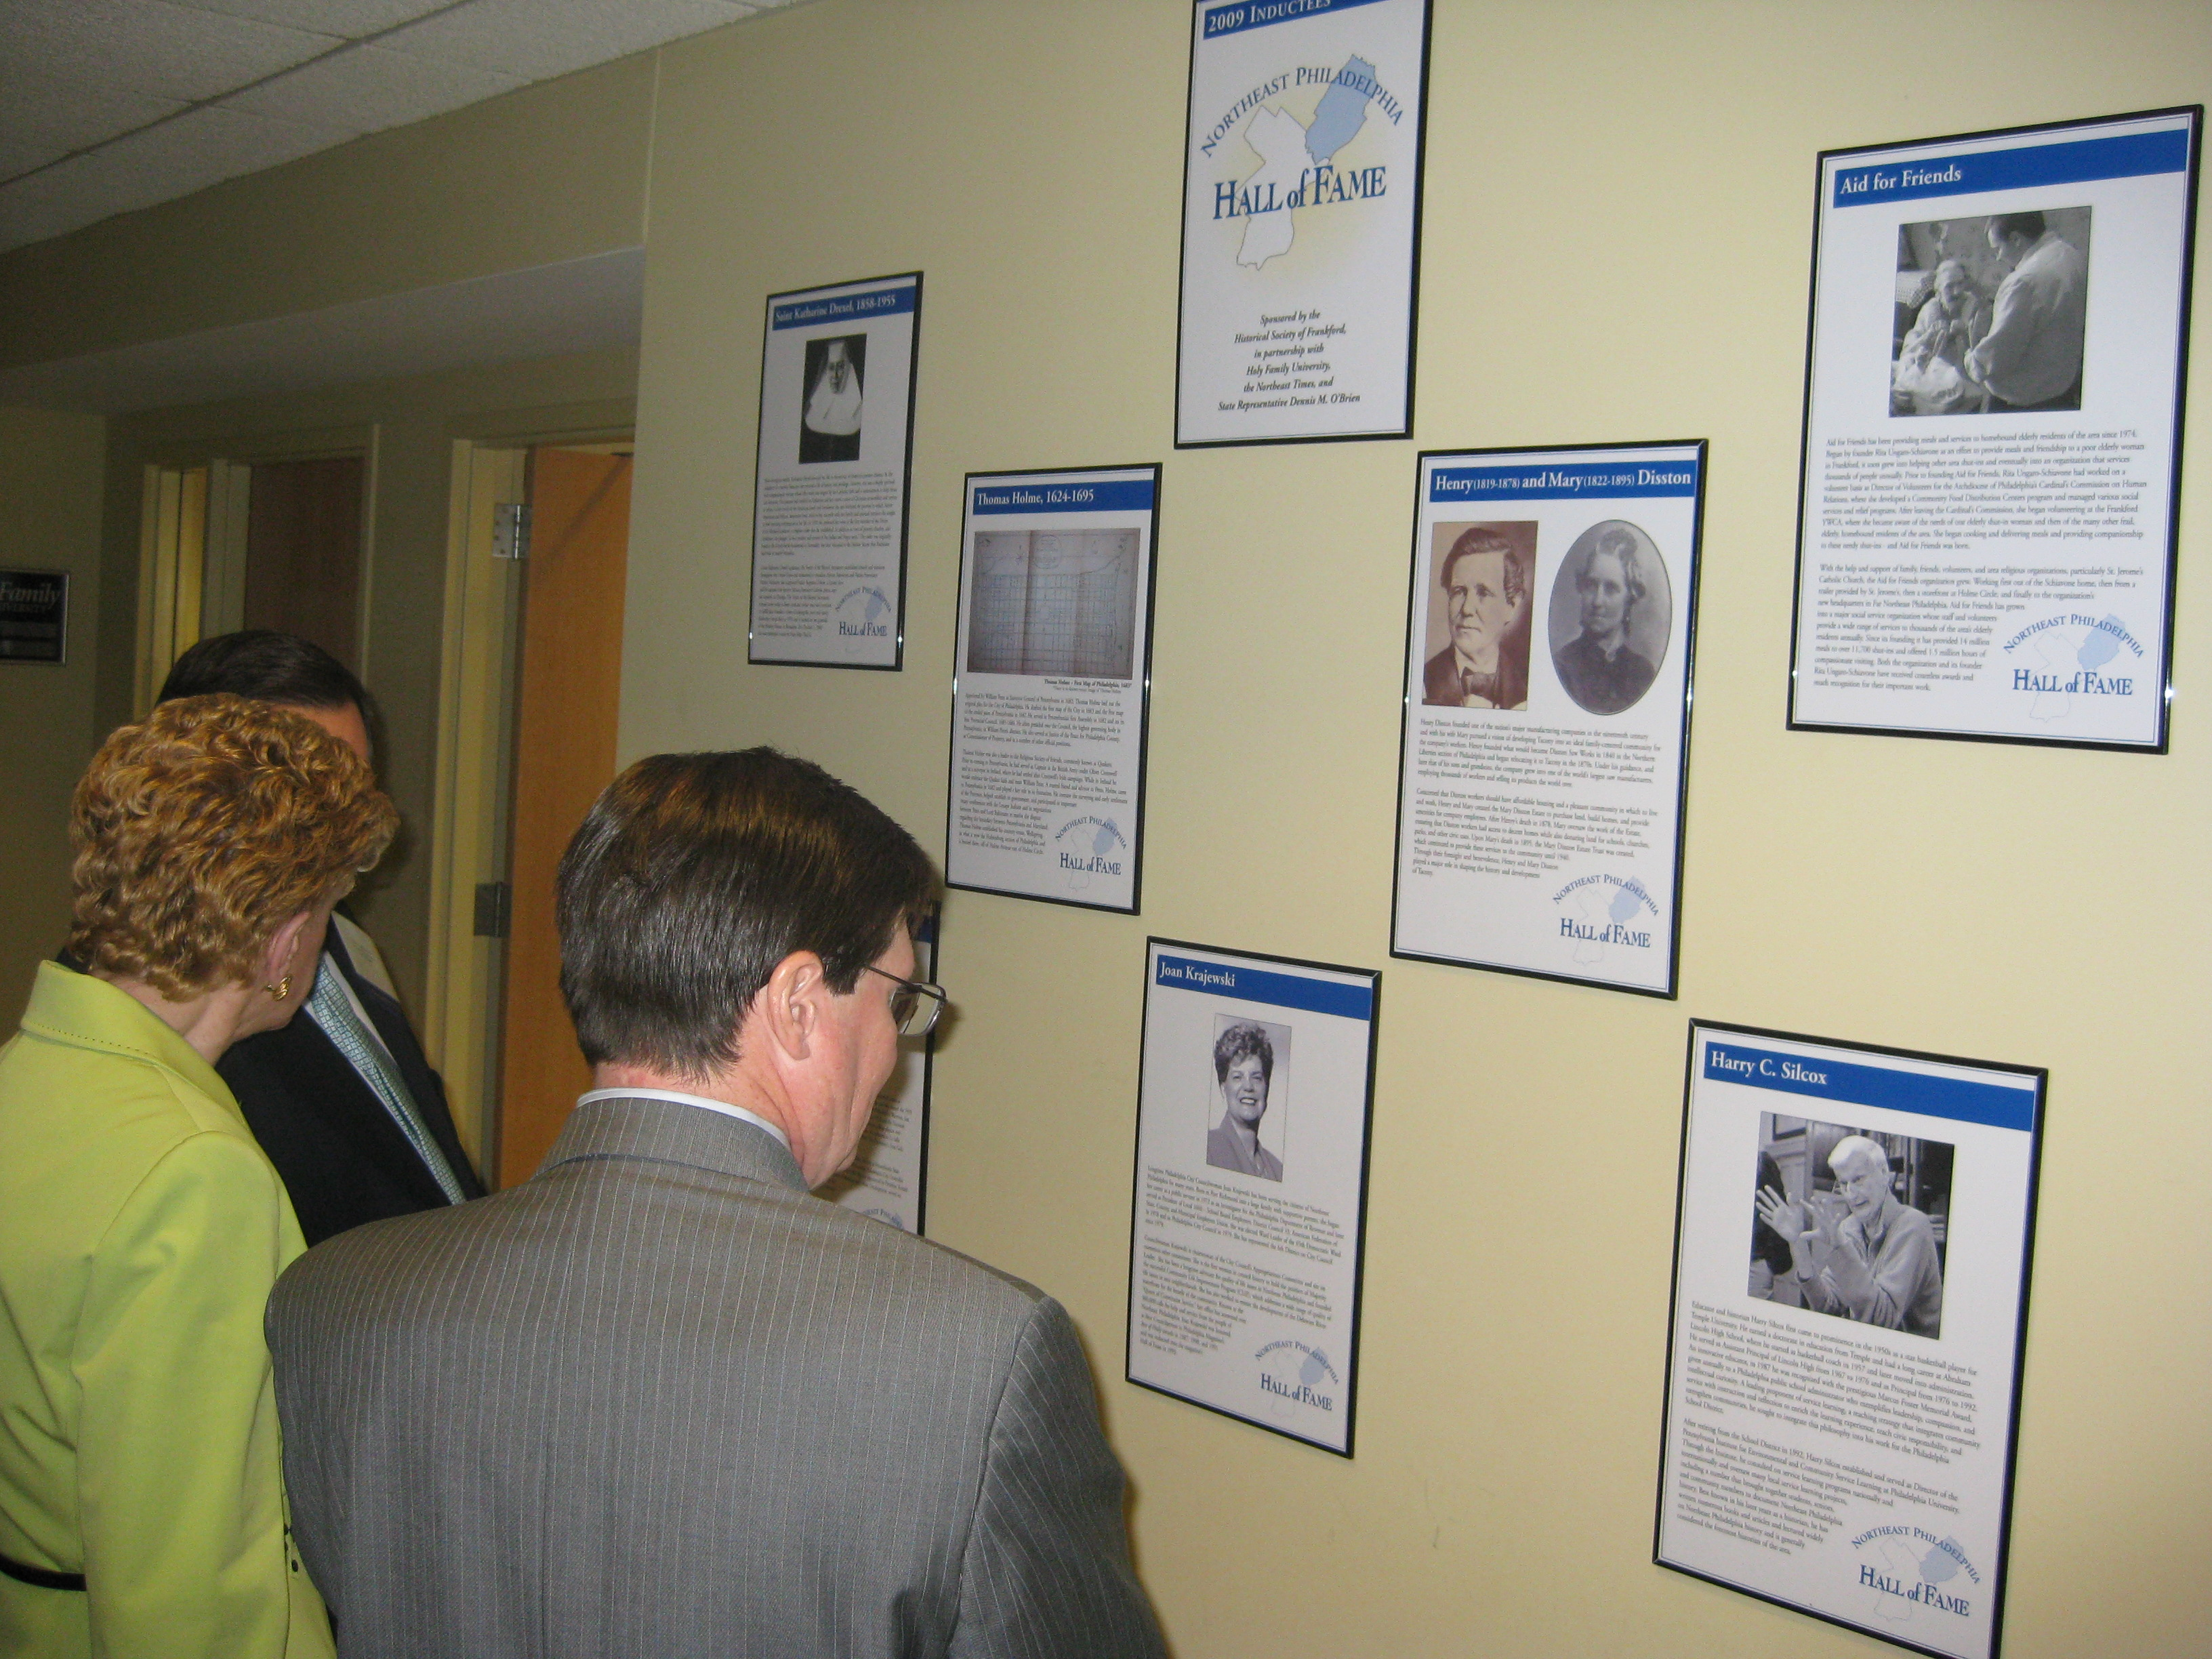 City Councilwoman Joan Krajewski (l) examines the wall of inductees to the Northeast Philadelphia Hall of Fame. Photo by Christopher Wink.